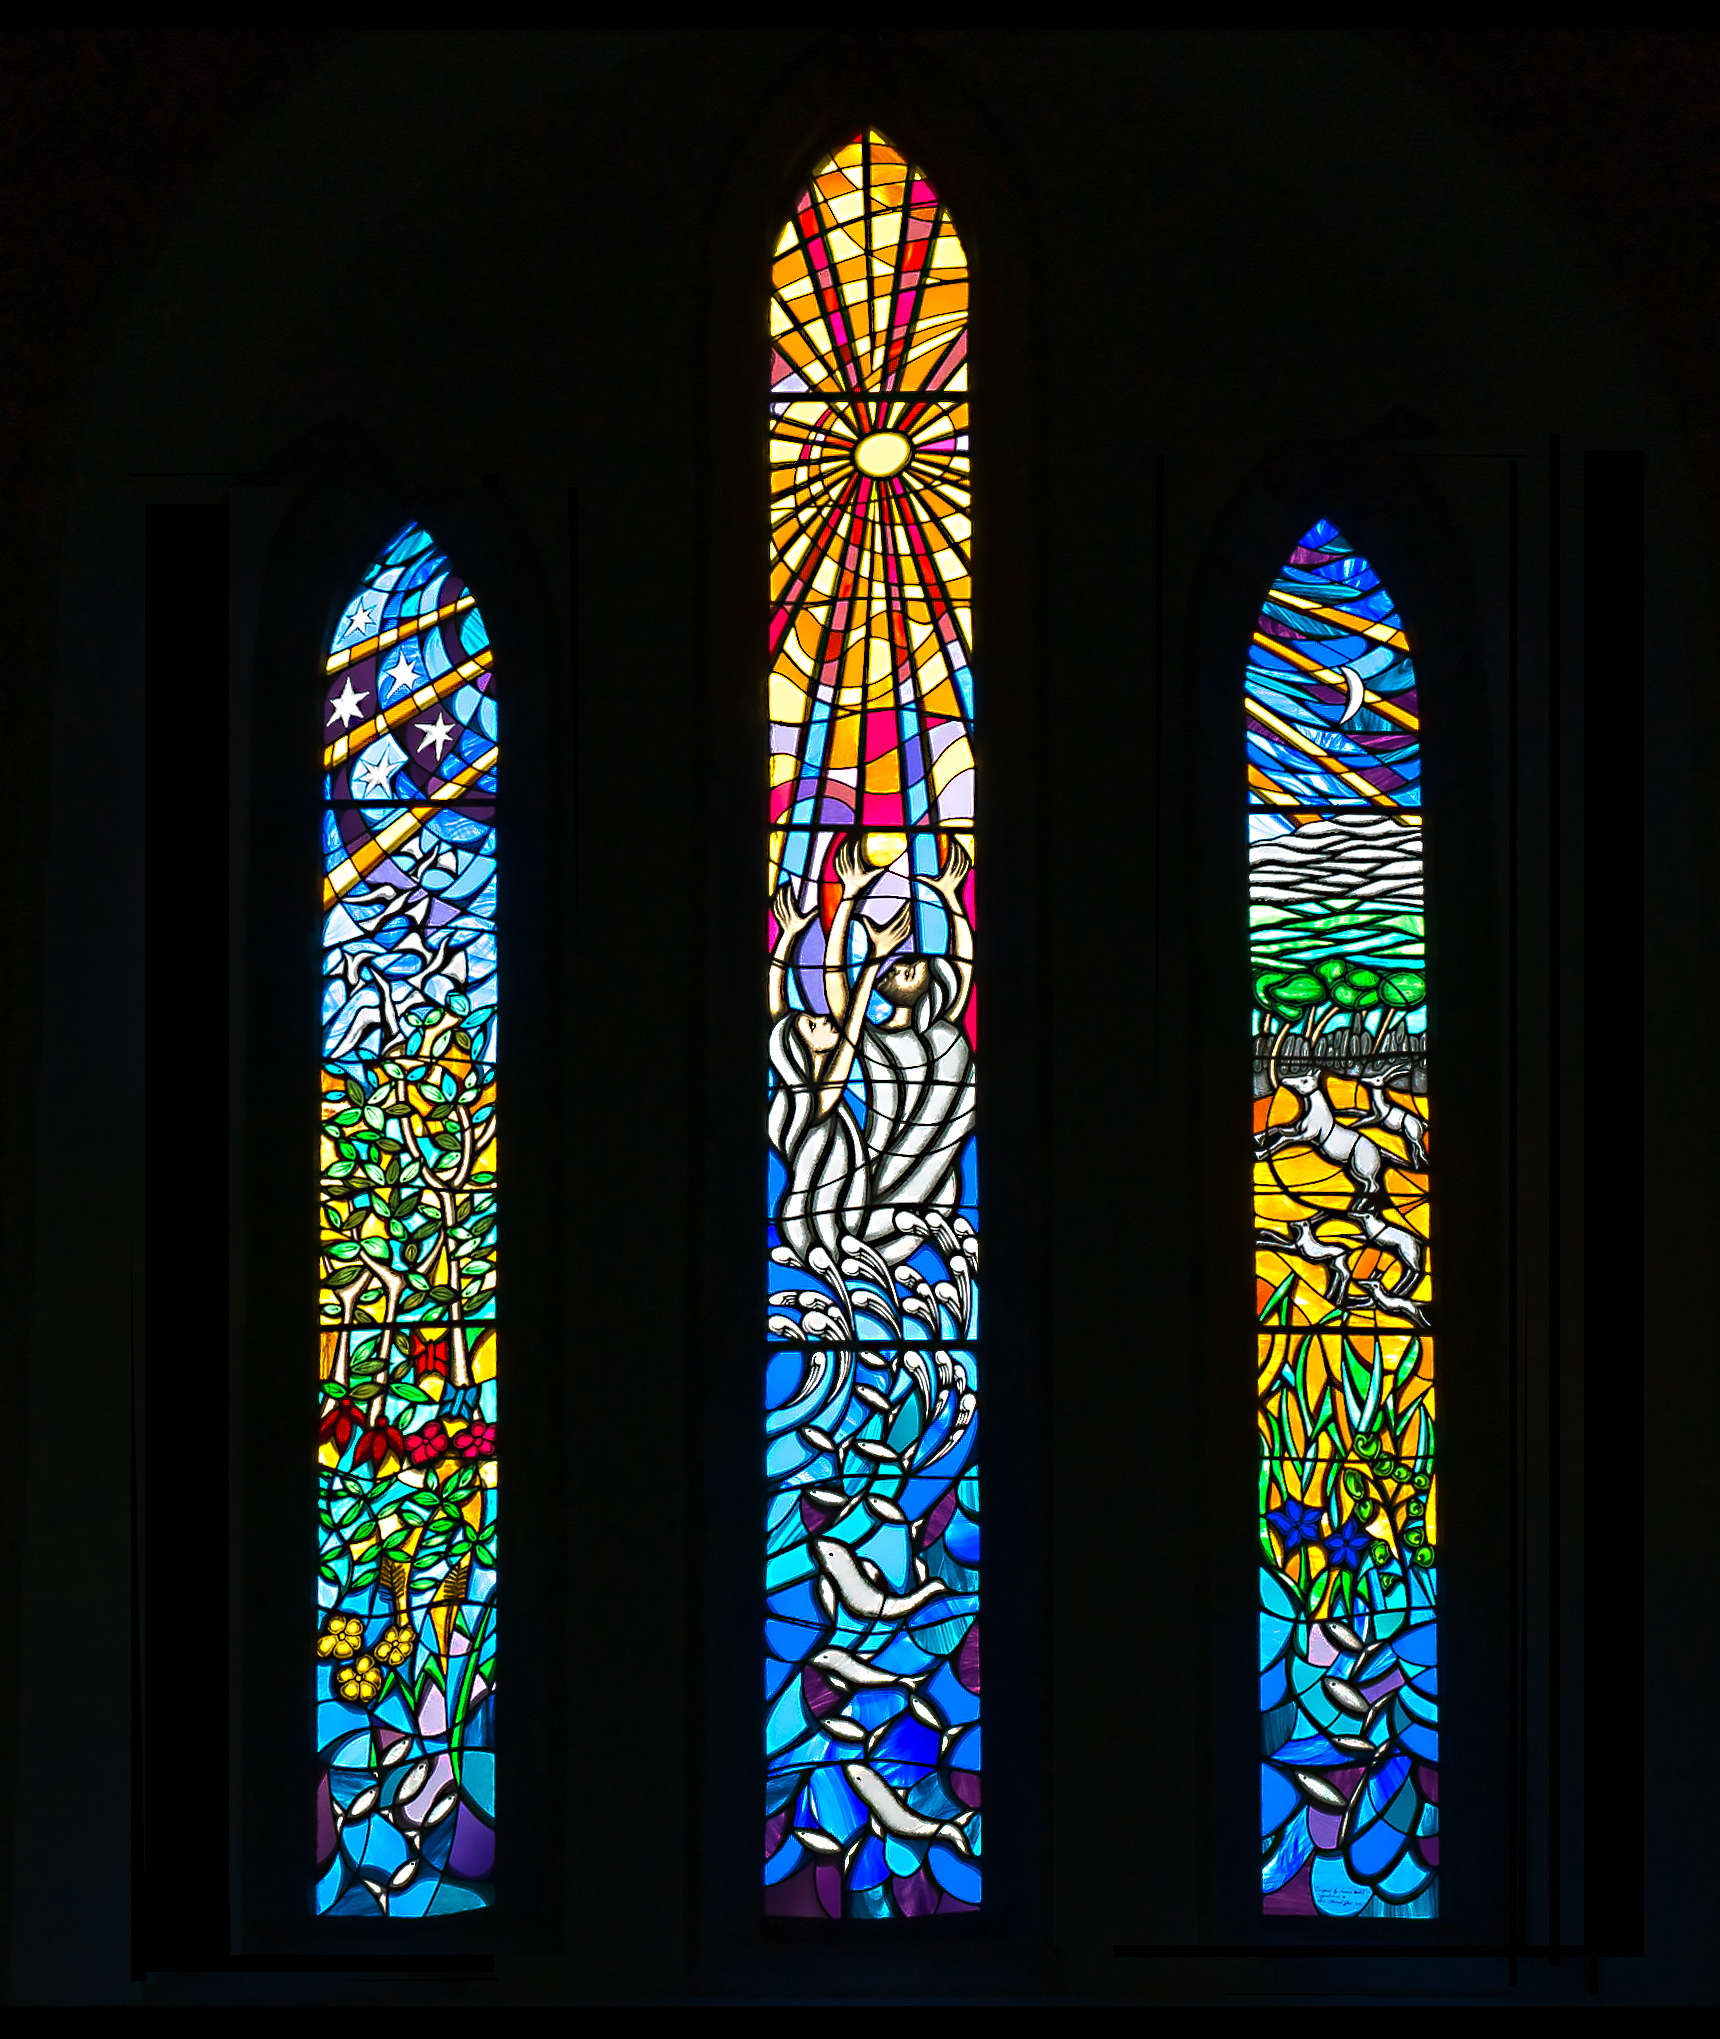 Saint John windows - Ballyvaughan